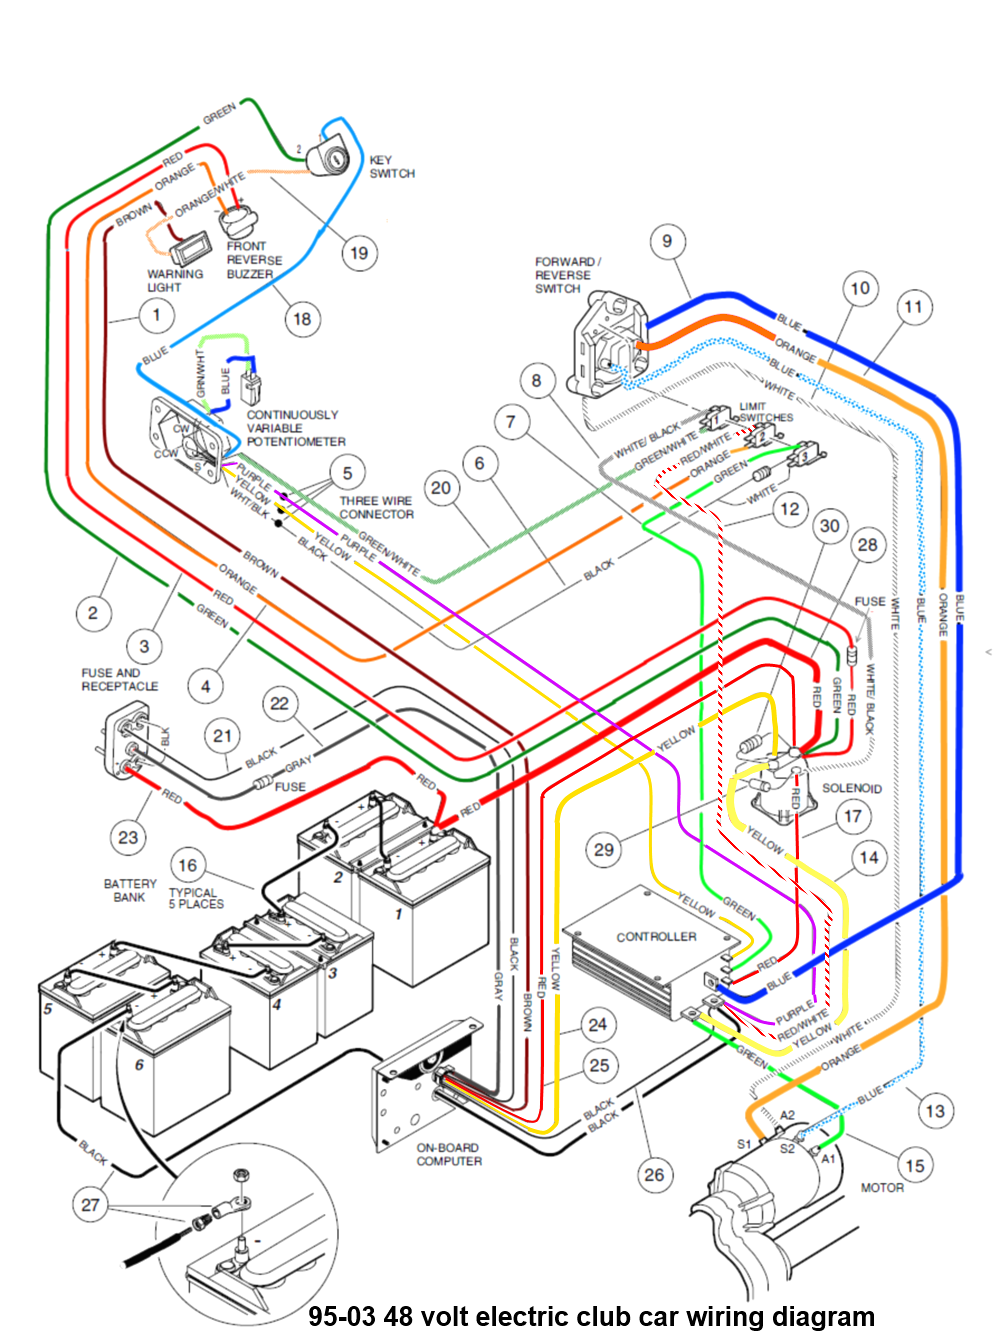 automotive wiring diagram drawing software s bacamajalah com the 23 best wiring diagram drawing  wiring diagram